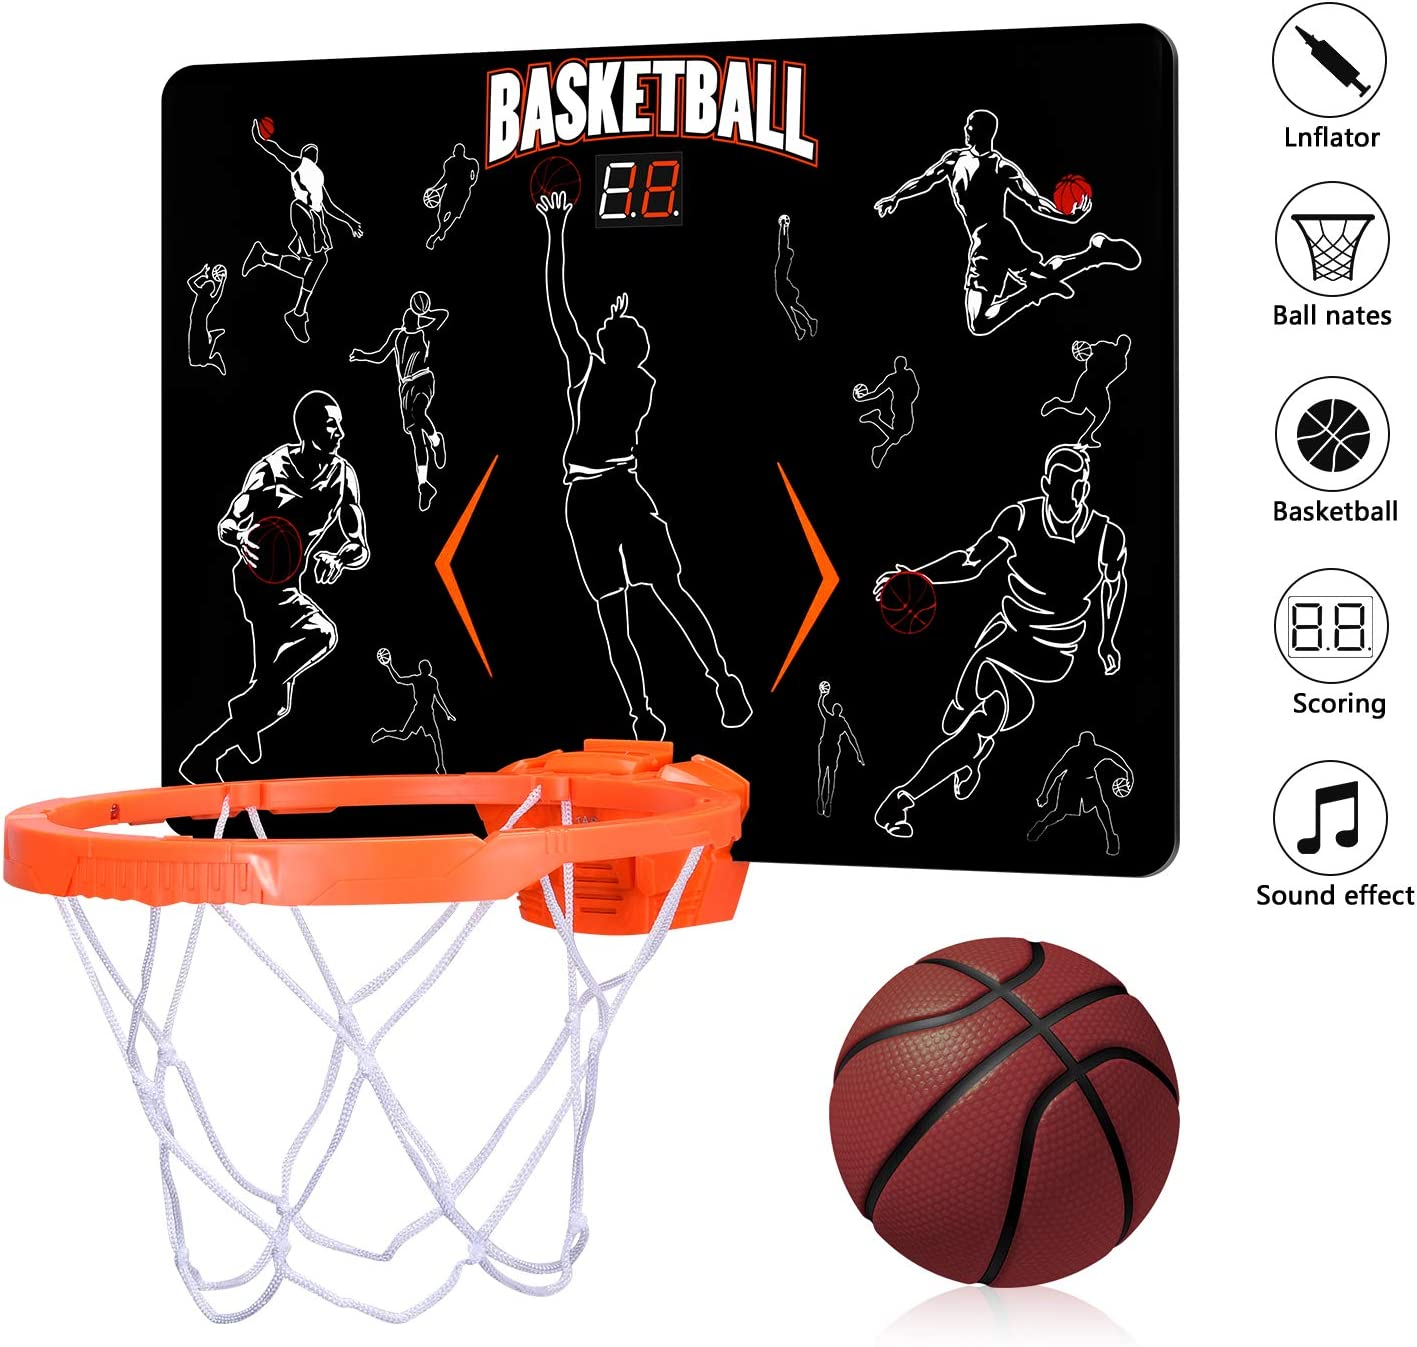 ZHIMO Mini Electronic Auto Scoreboard Basketball Hoop Indoor Basketball Hoop Set- Ideal Basketball Toy Gifts for Kids Boys Teens